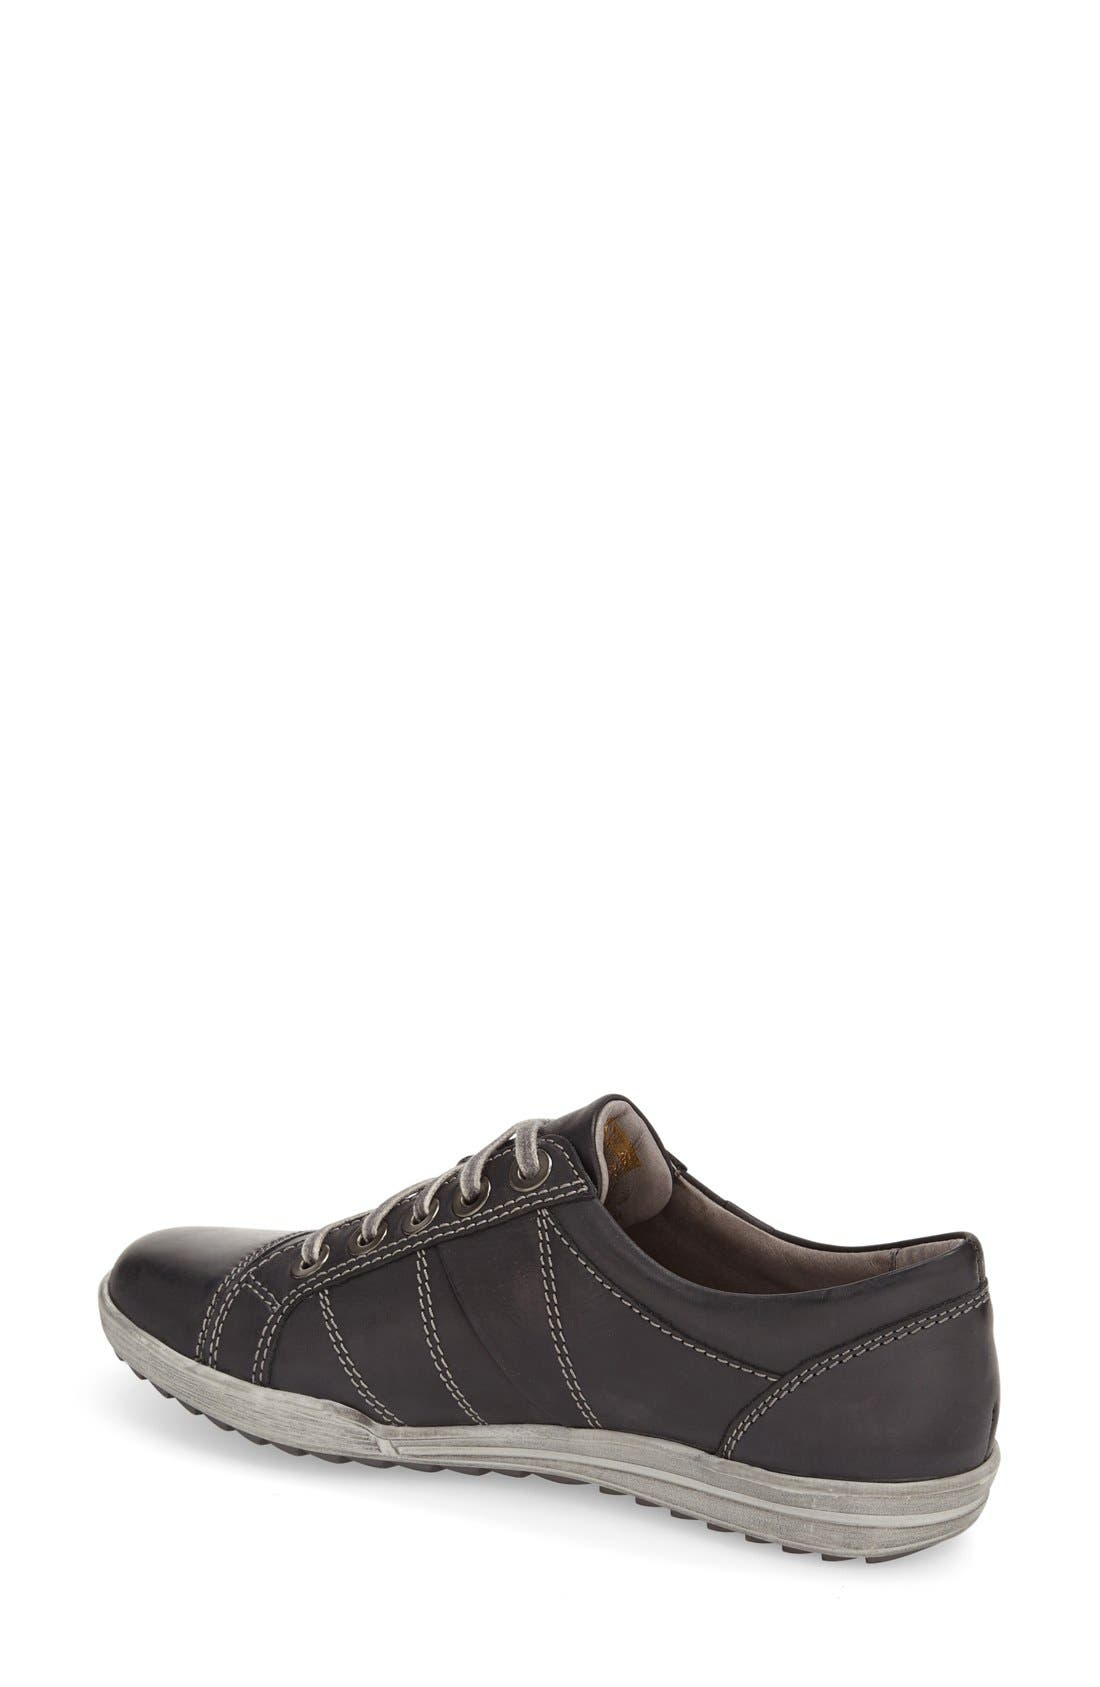 'Dany 05' Leather Sneaker,                             Alternate thumbnail 45, color,